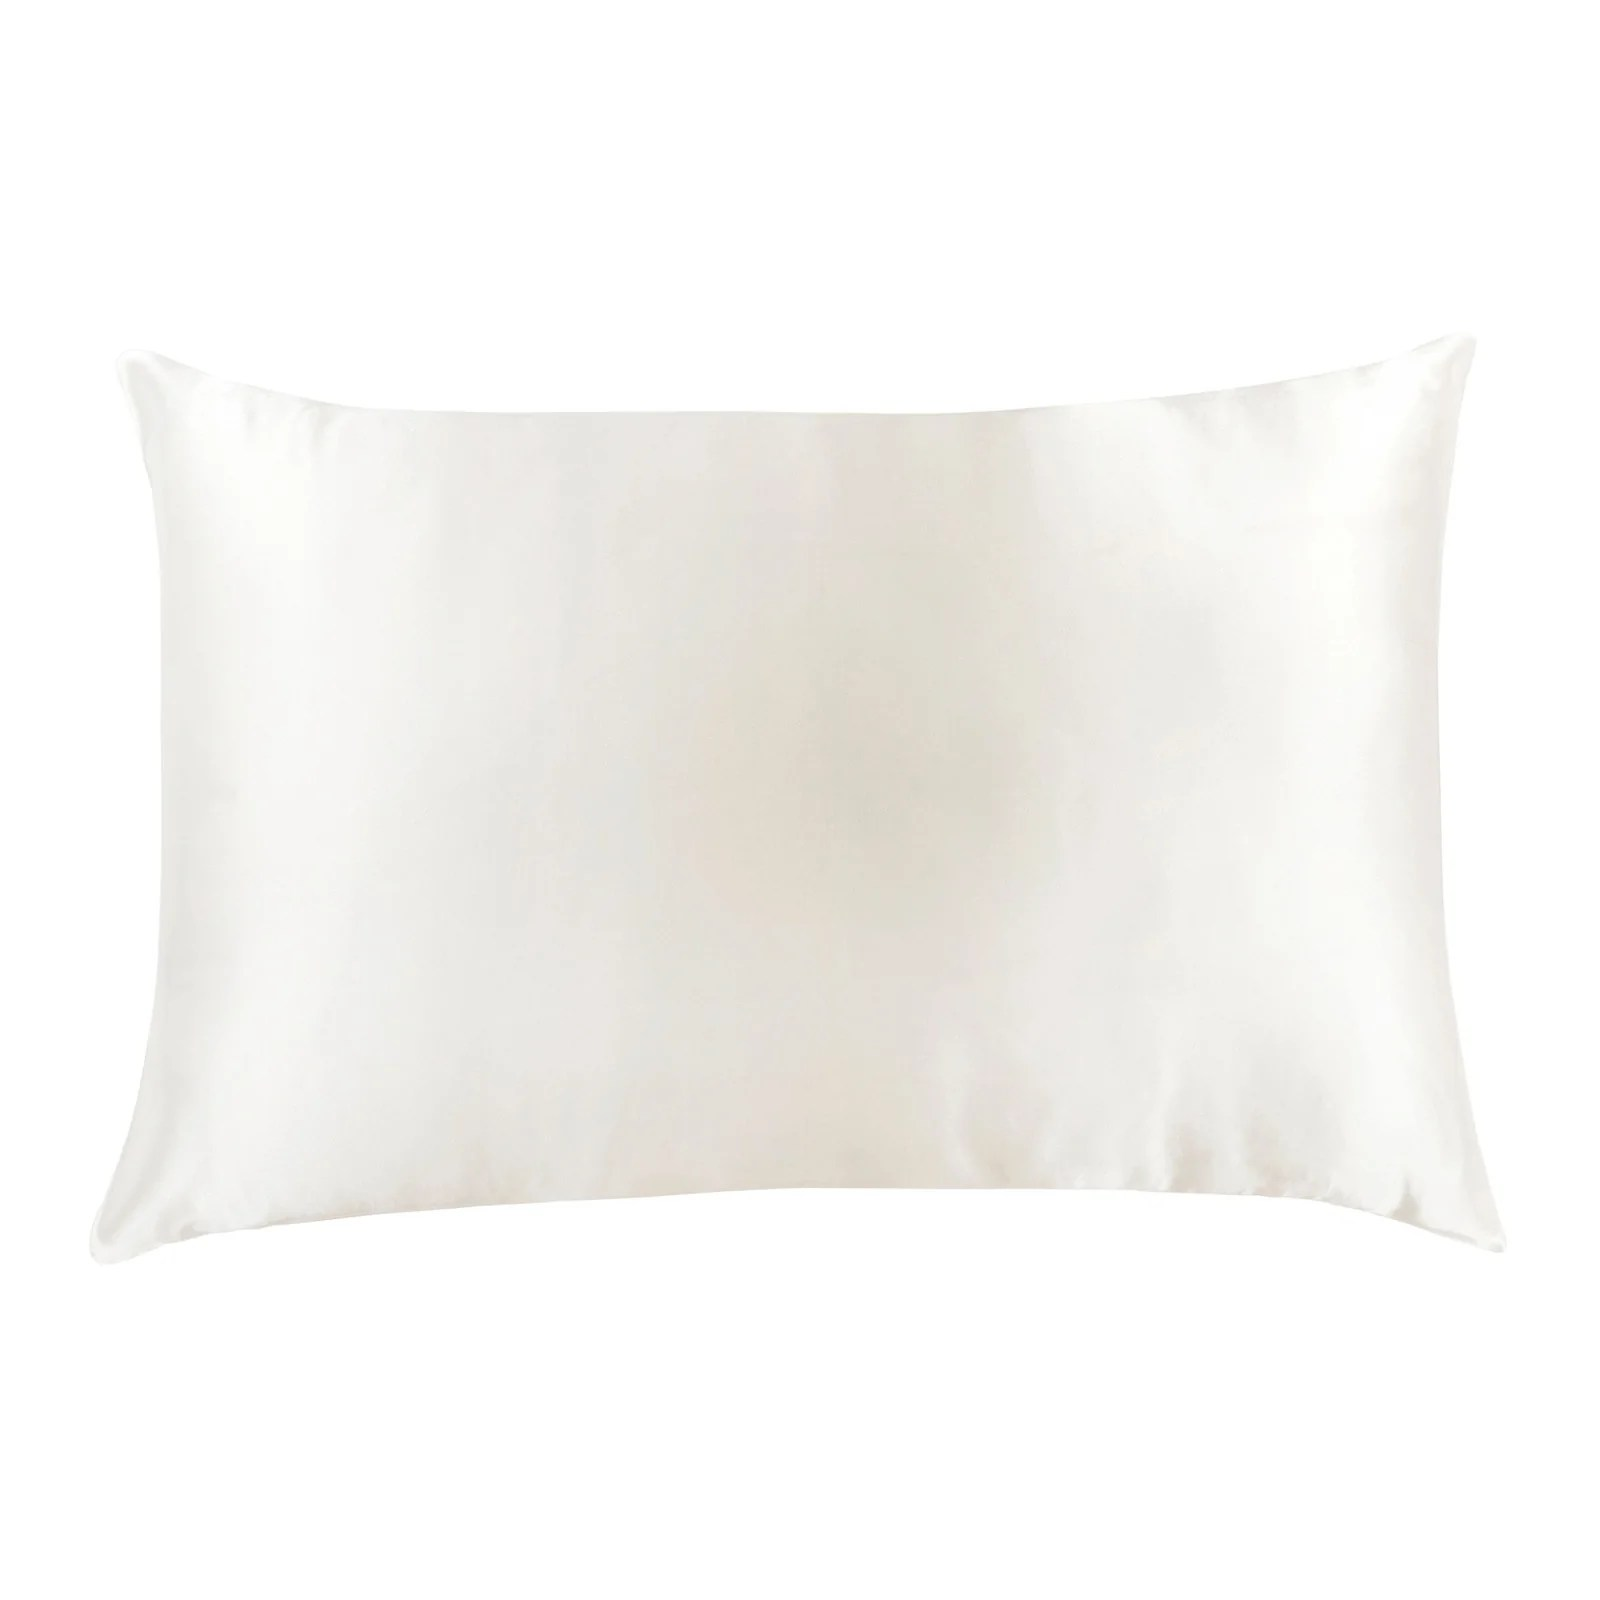 Satin Pillowcase Australia Gifts And Homewares Curtis And Cloud